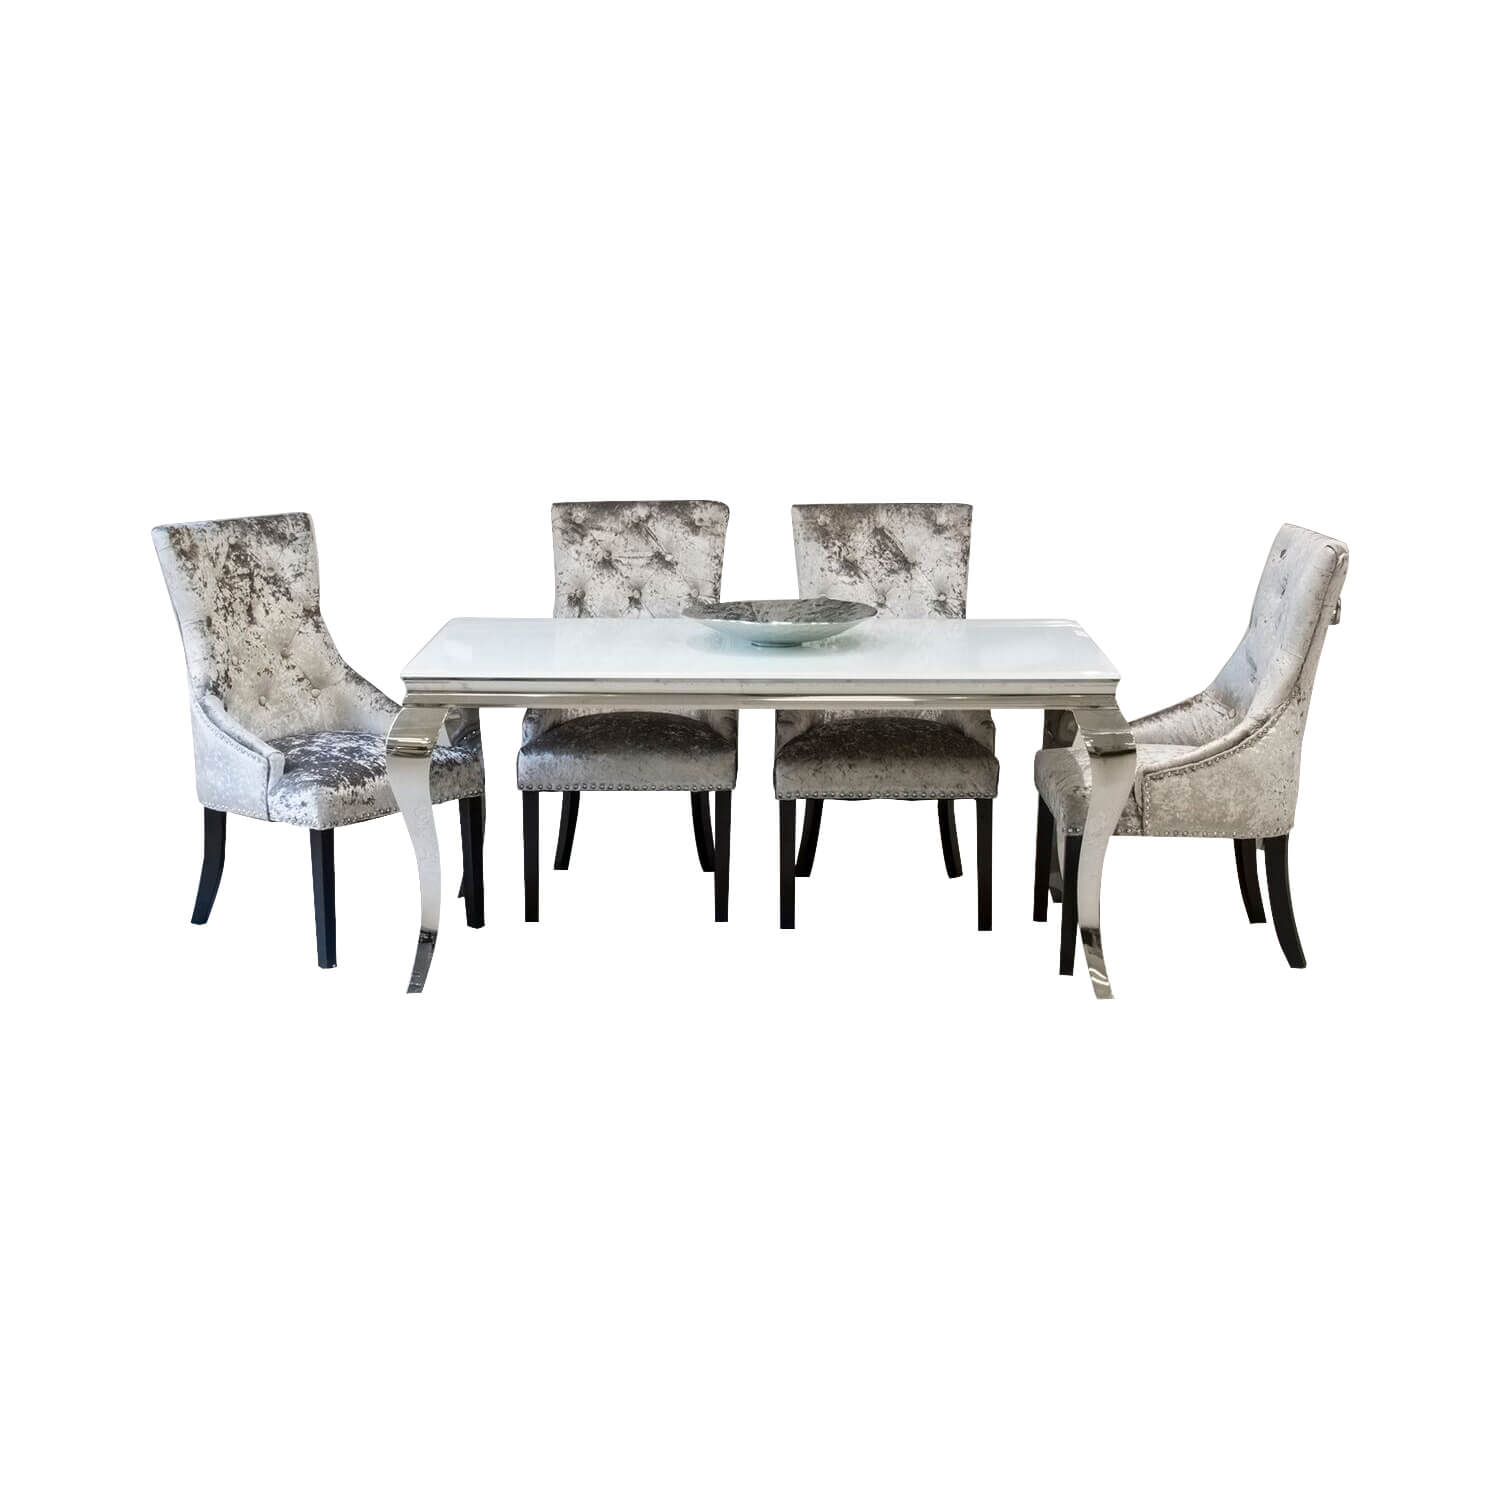 Grande Cream Marble Dining Table Set | Modern Marble | FADS